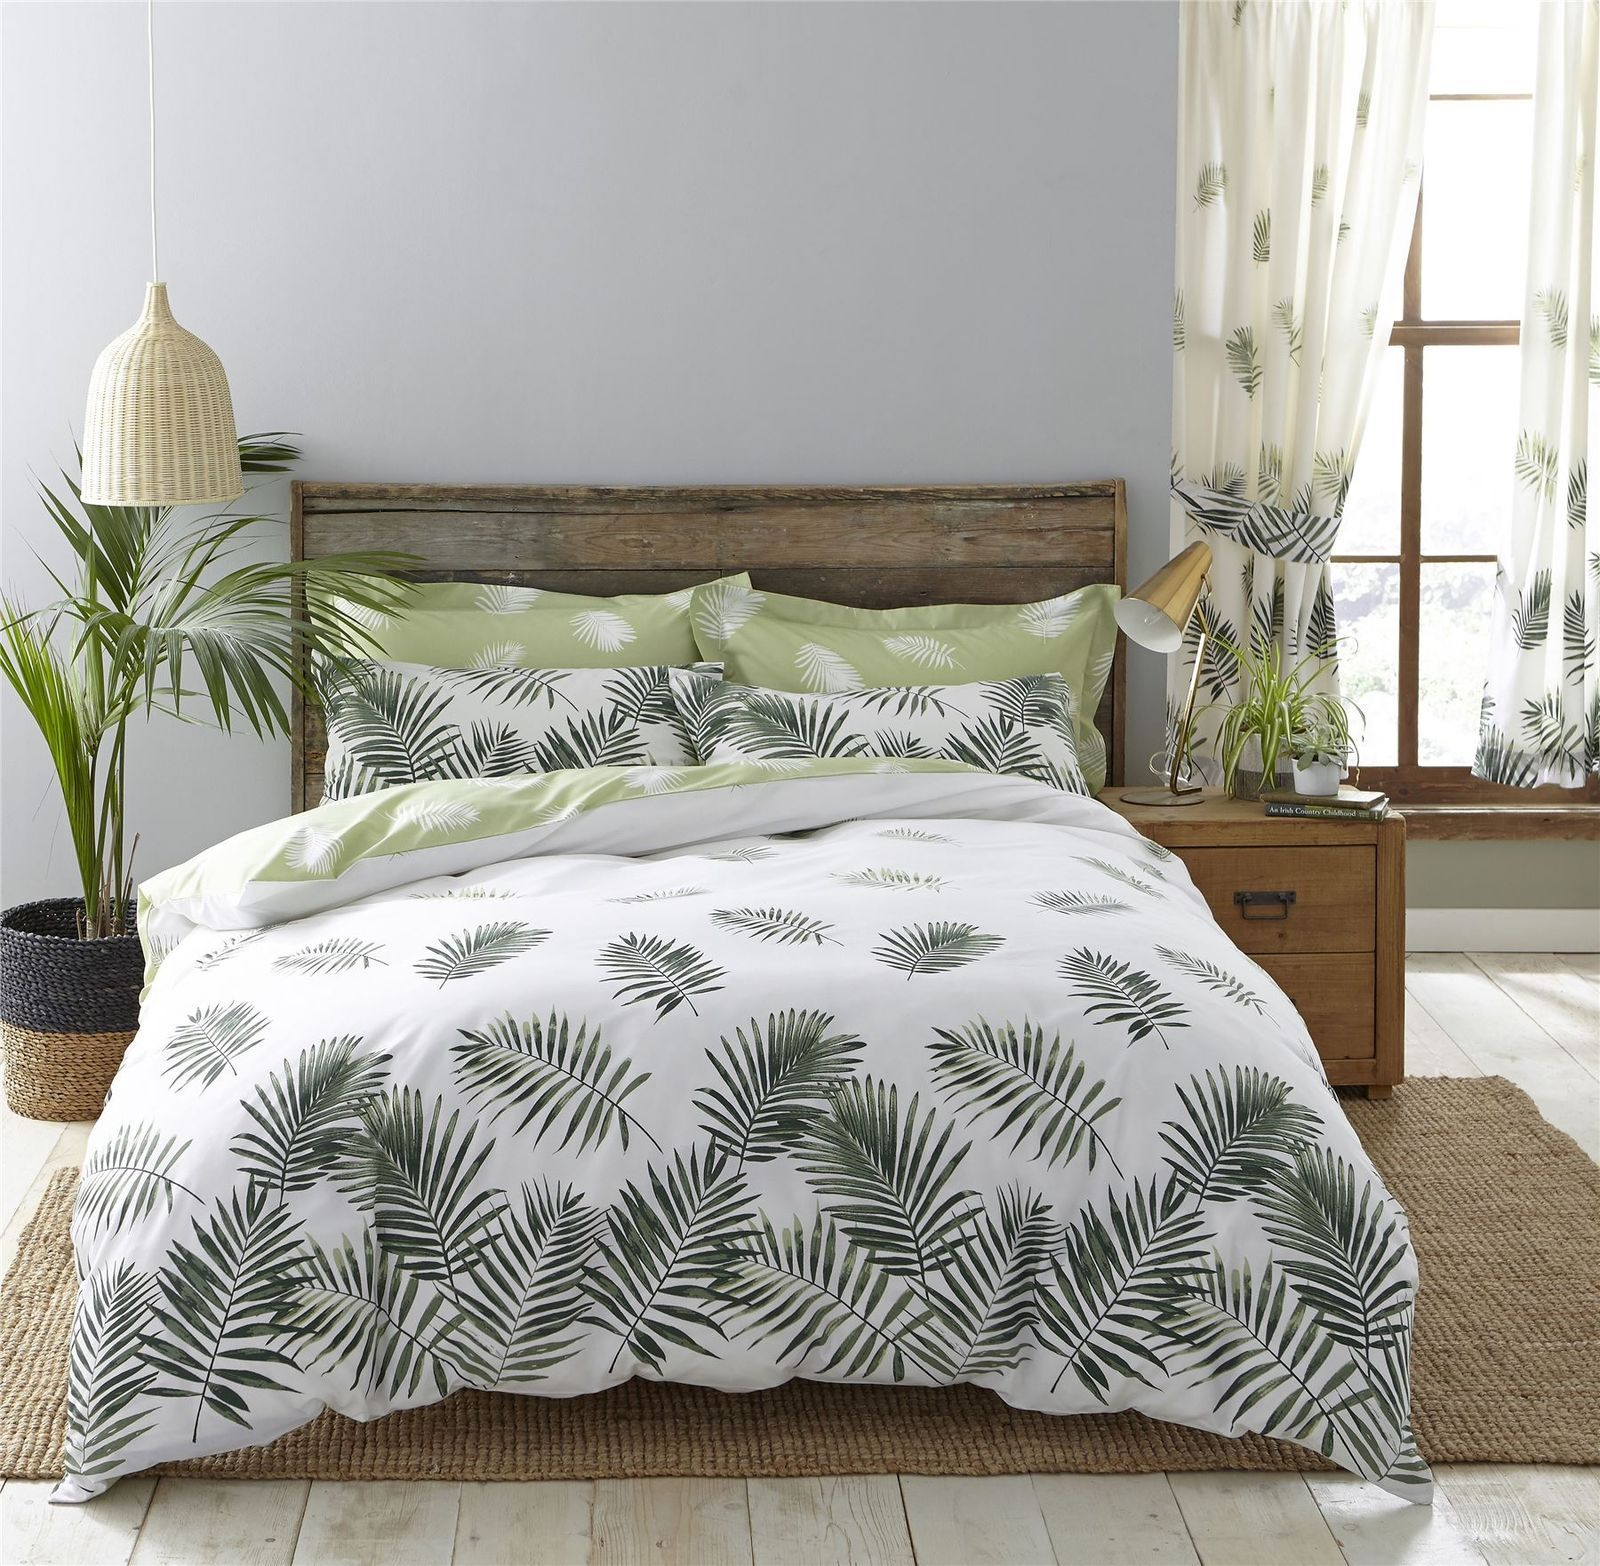 Home De Bleu Bettwäsche Large Fern Leaves Green White 144 Tc Cotton And 50 Similar Items